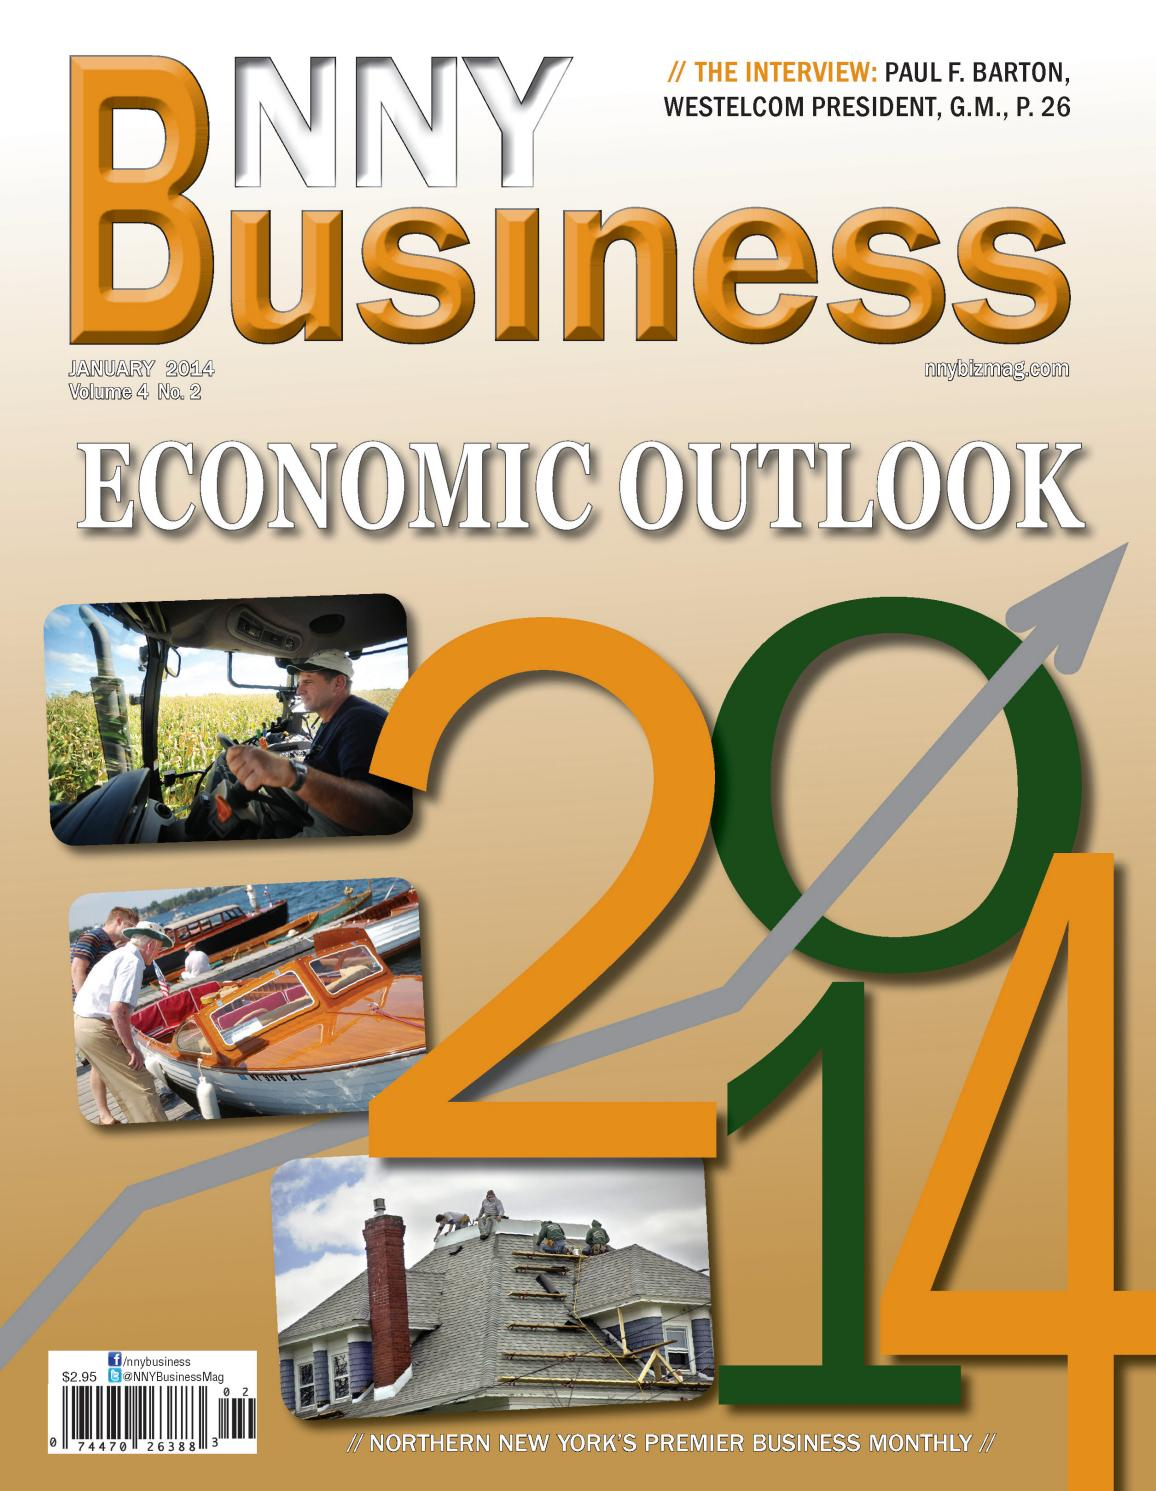 Nny business january 2014 by nny business issuu fandeluxe Images